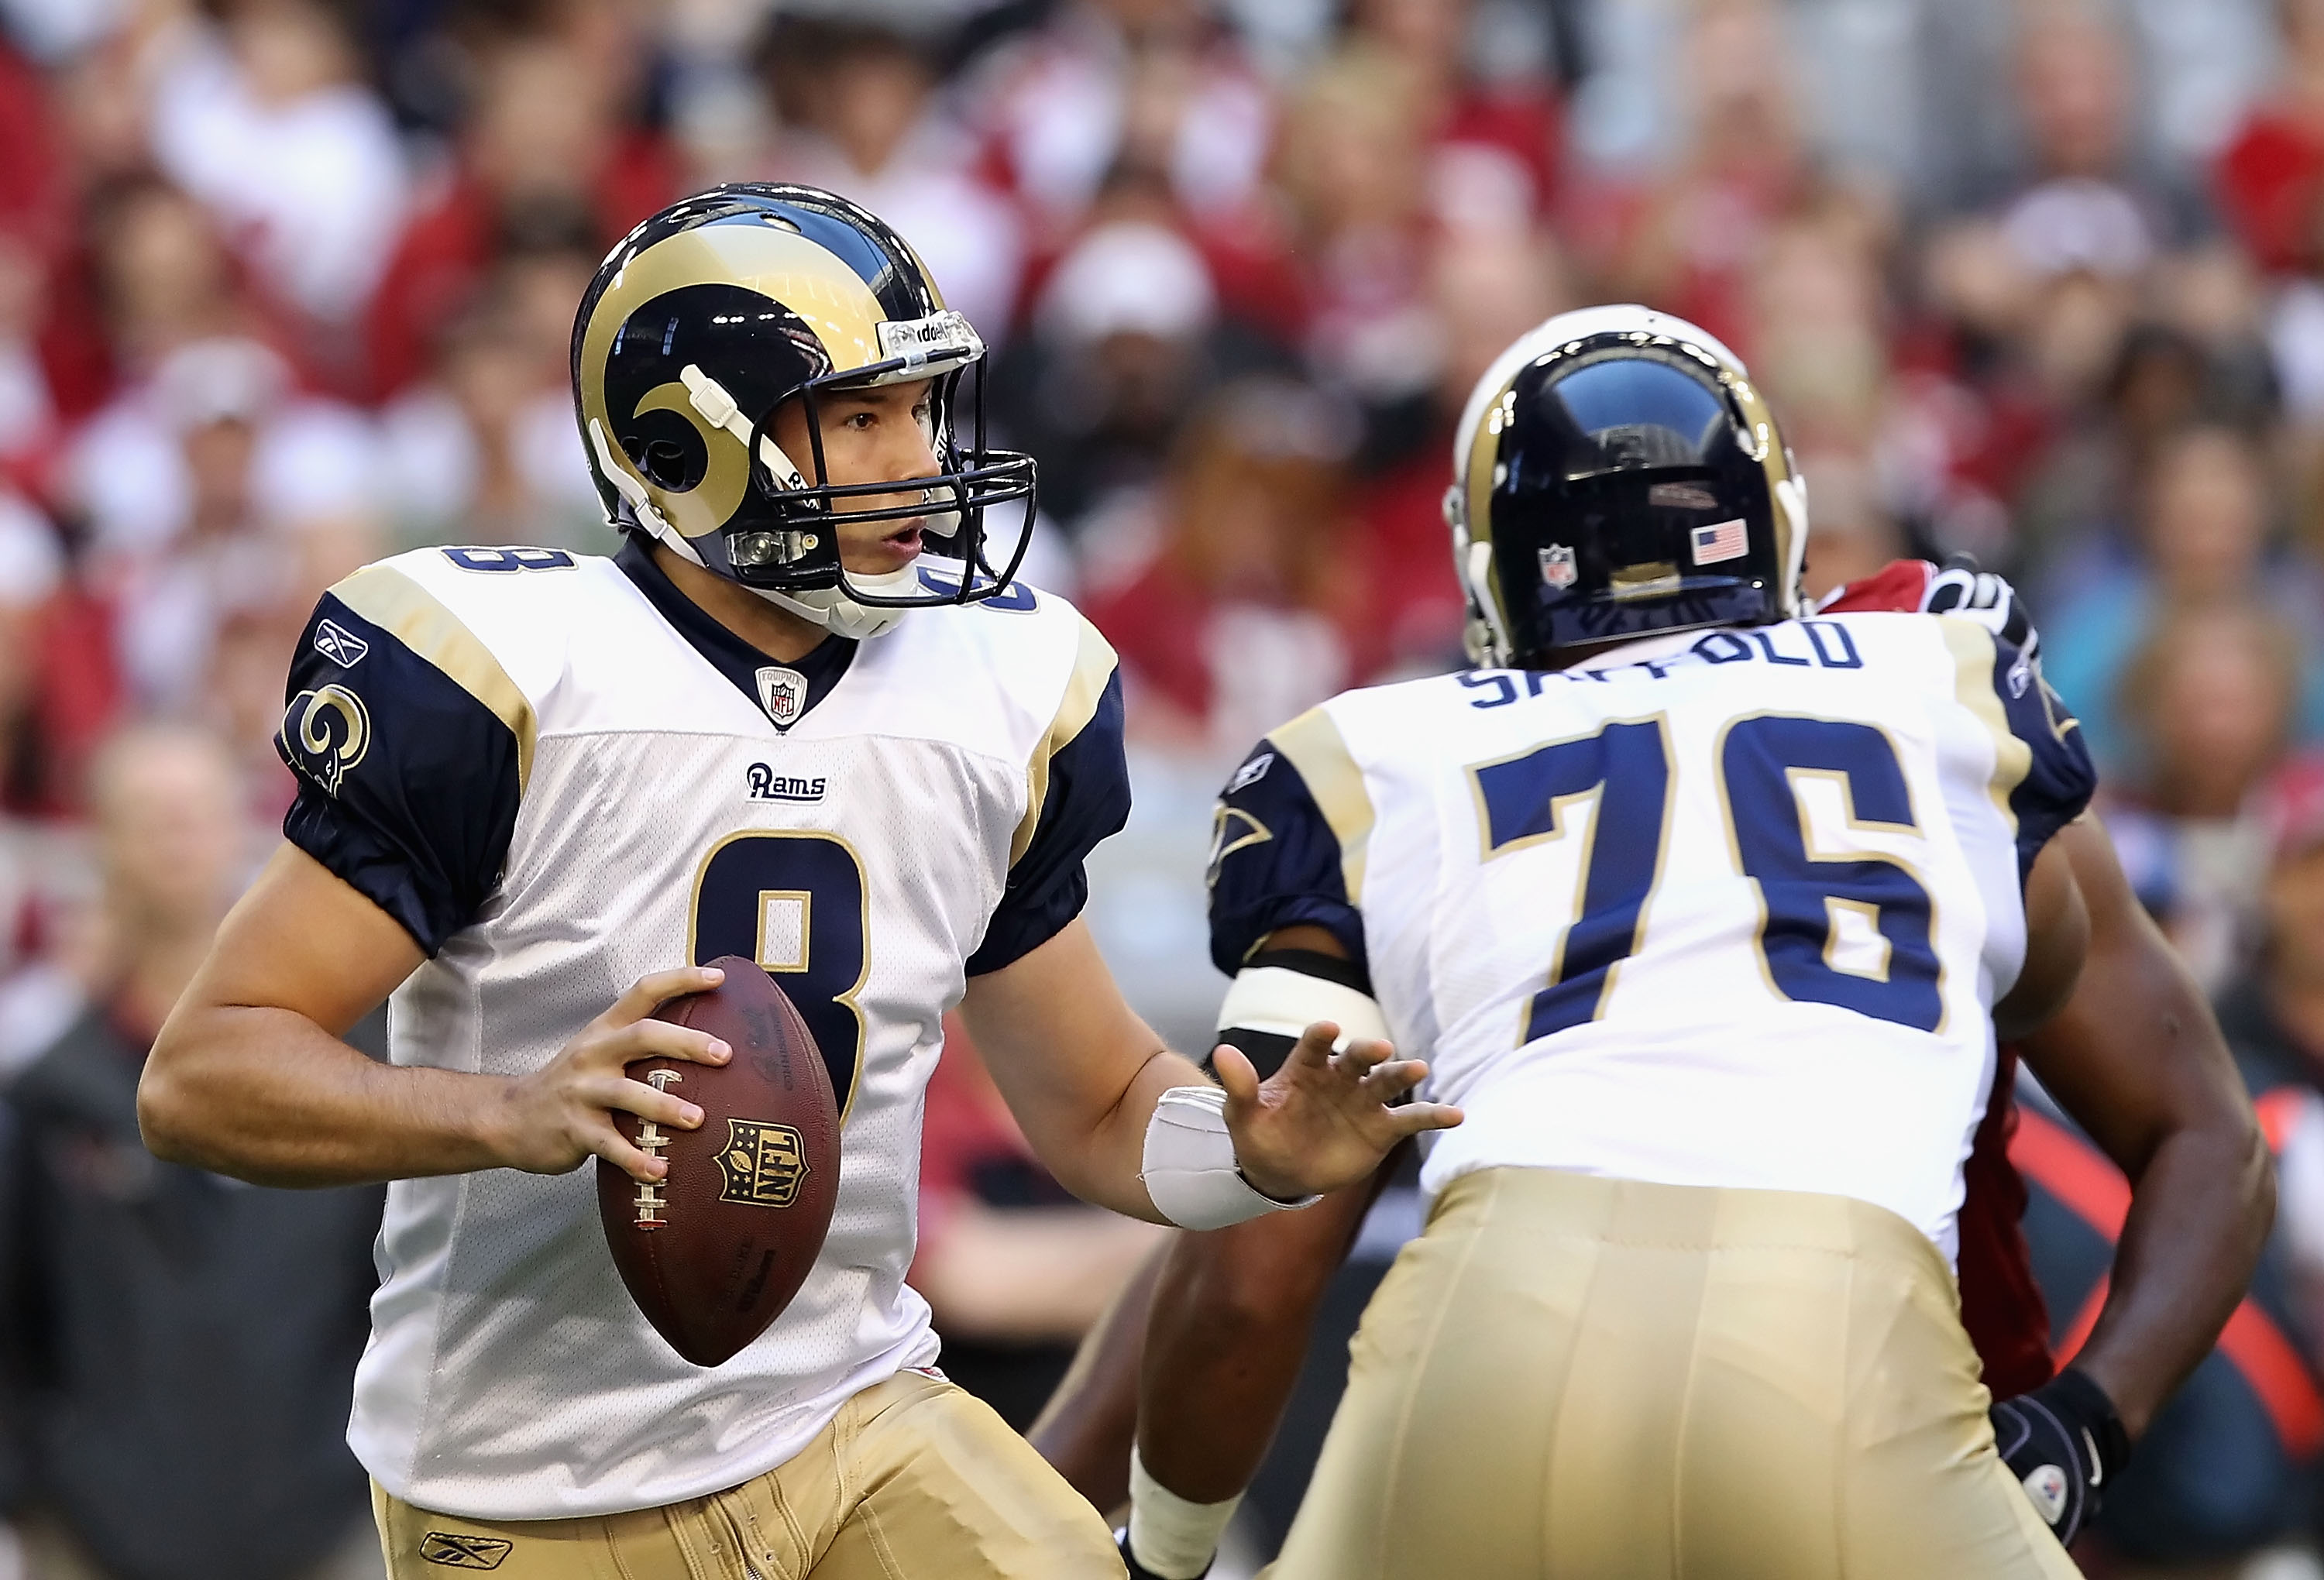 GLENDALE, AZ - DECEMBER 05:  Quarterback Sam Bradford #8 of the St. Louis Rams scrambles to pass the football during the NFL game against the Arizona Cardinals at the University of Phoenix Stadium on December 5, 2010 in Glendale, Arizona. The Rams defeate